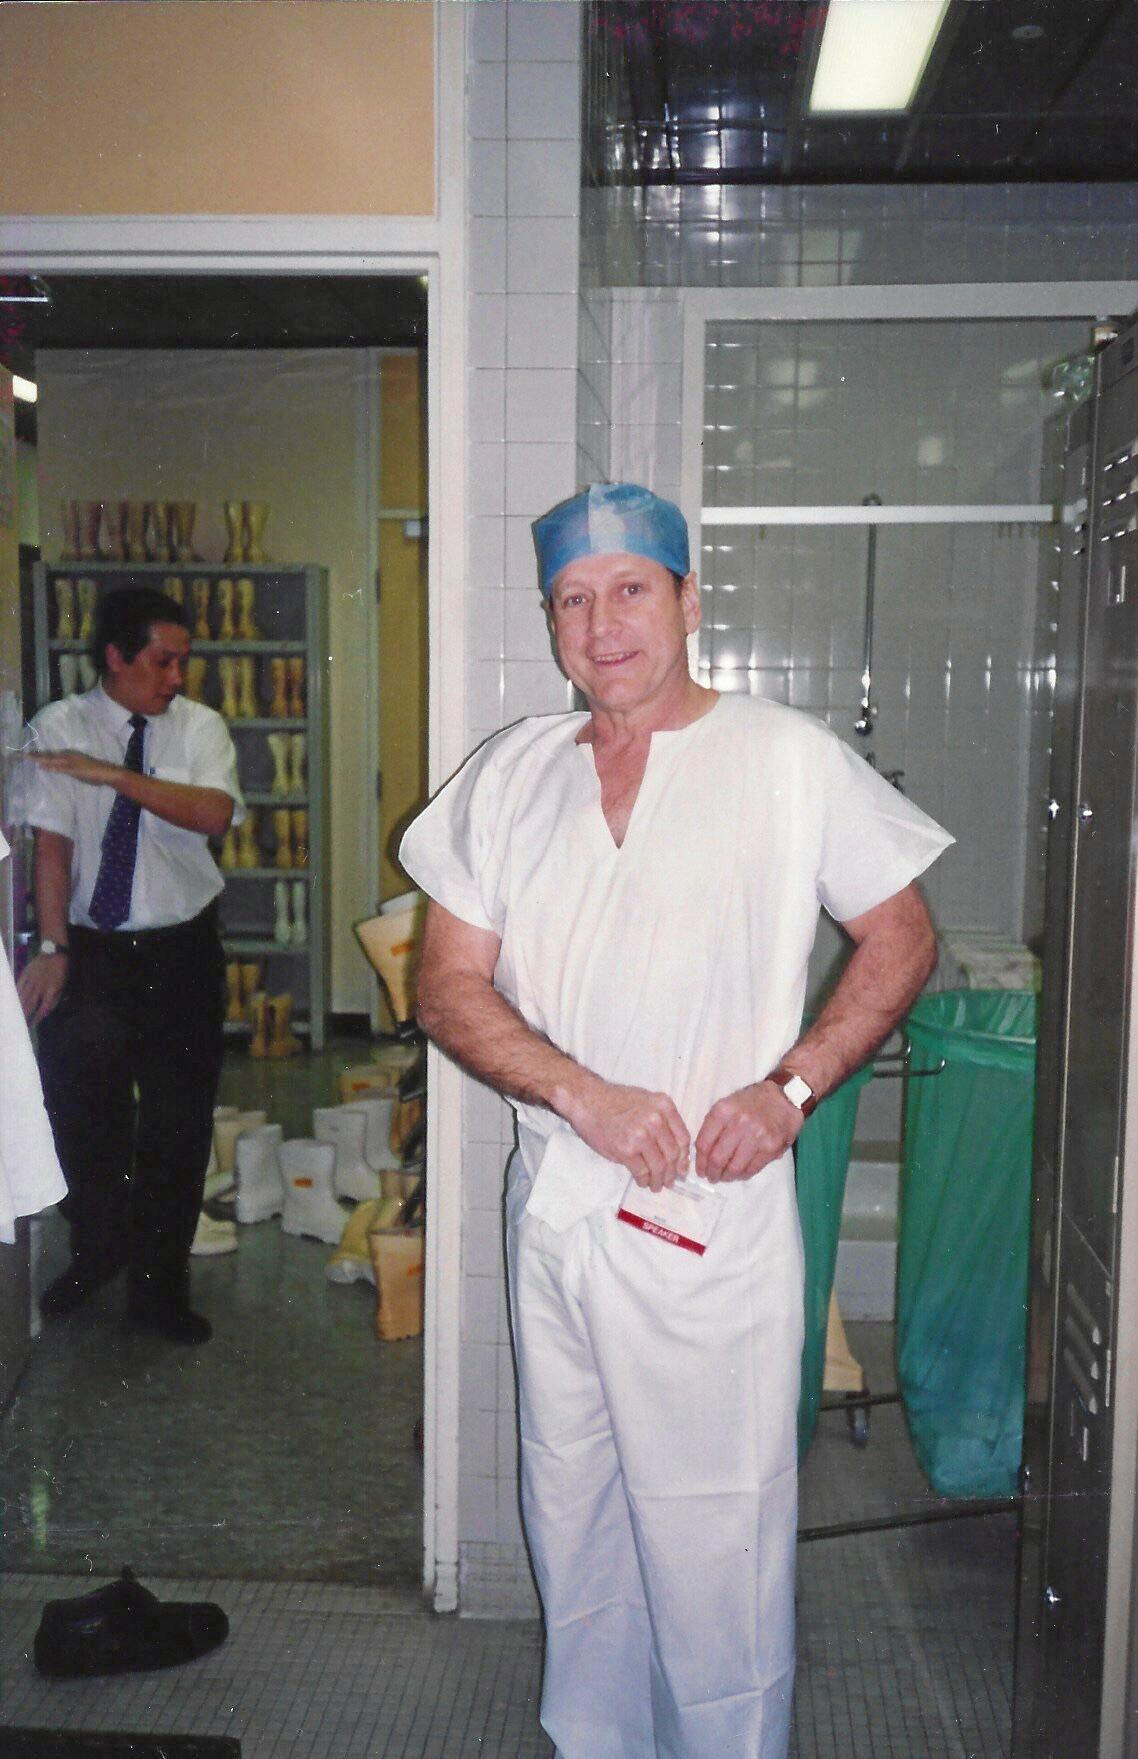 .Dr Russell Stitz as a visiting surgeon in Singapore in 1993